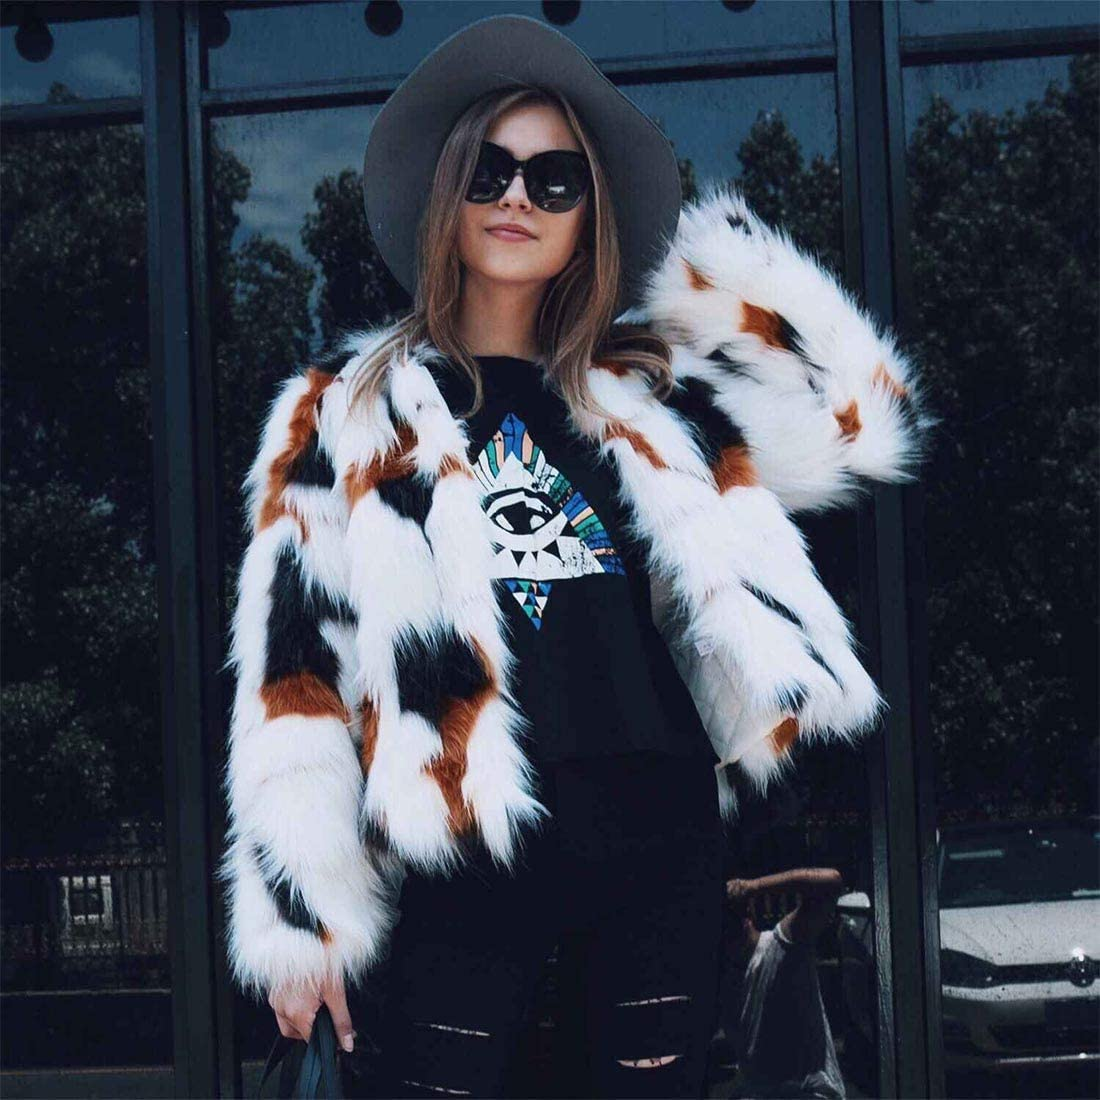 YYF Womens Winter Colorful Faux Fur Coat Thick Long Sleeve Jacket Warm Outwear with Pockets